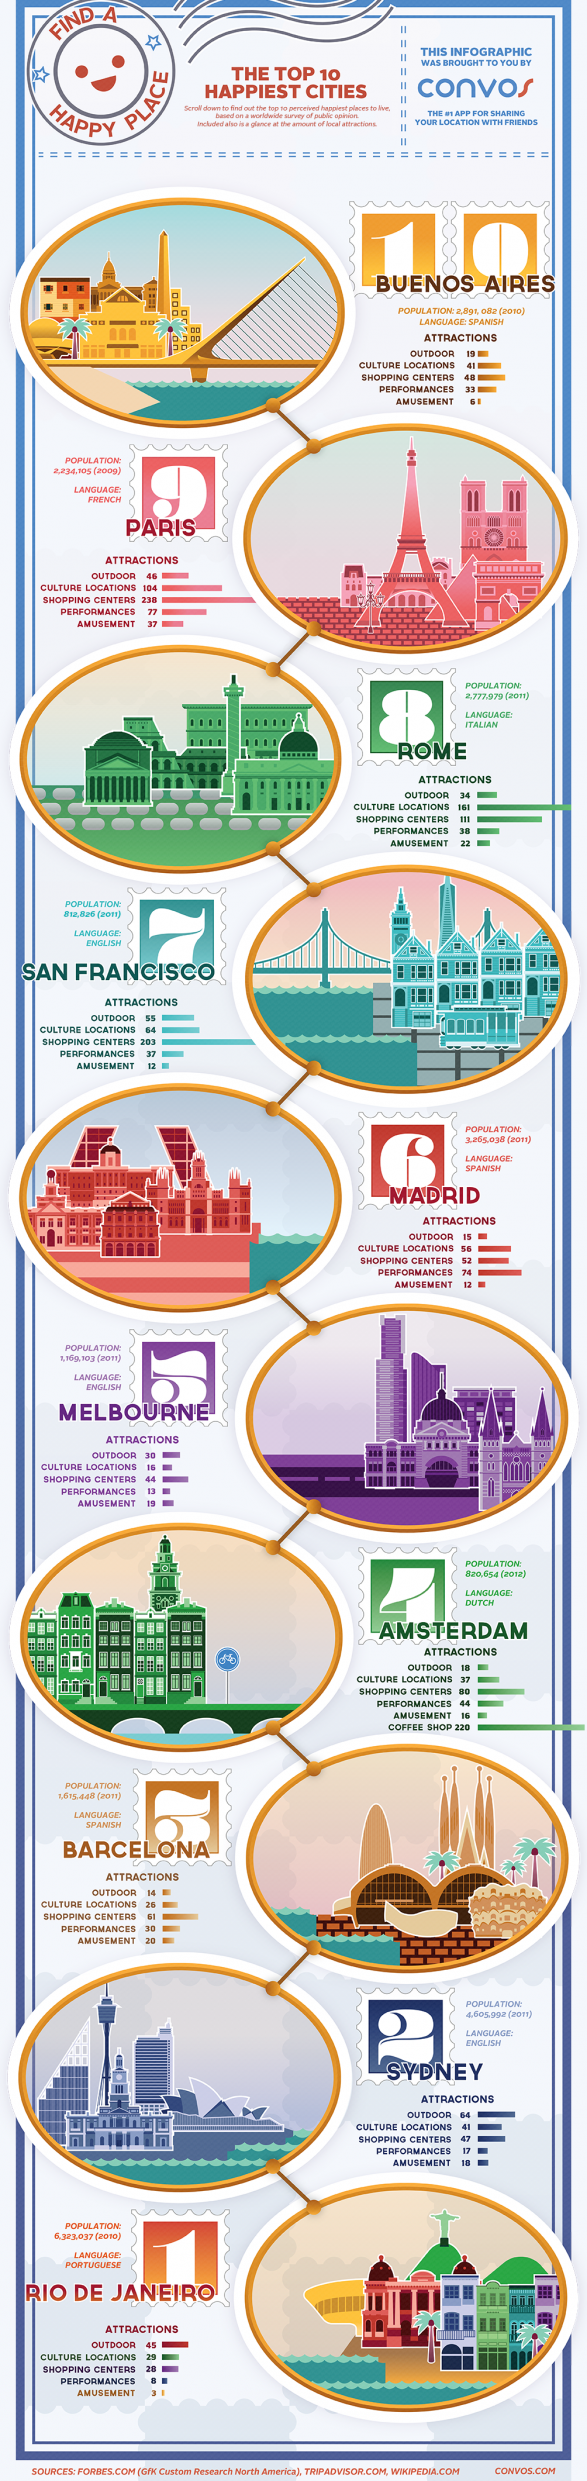 Find A Happy Place: The Top 10 Happiest Cities